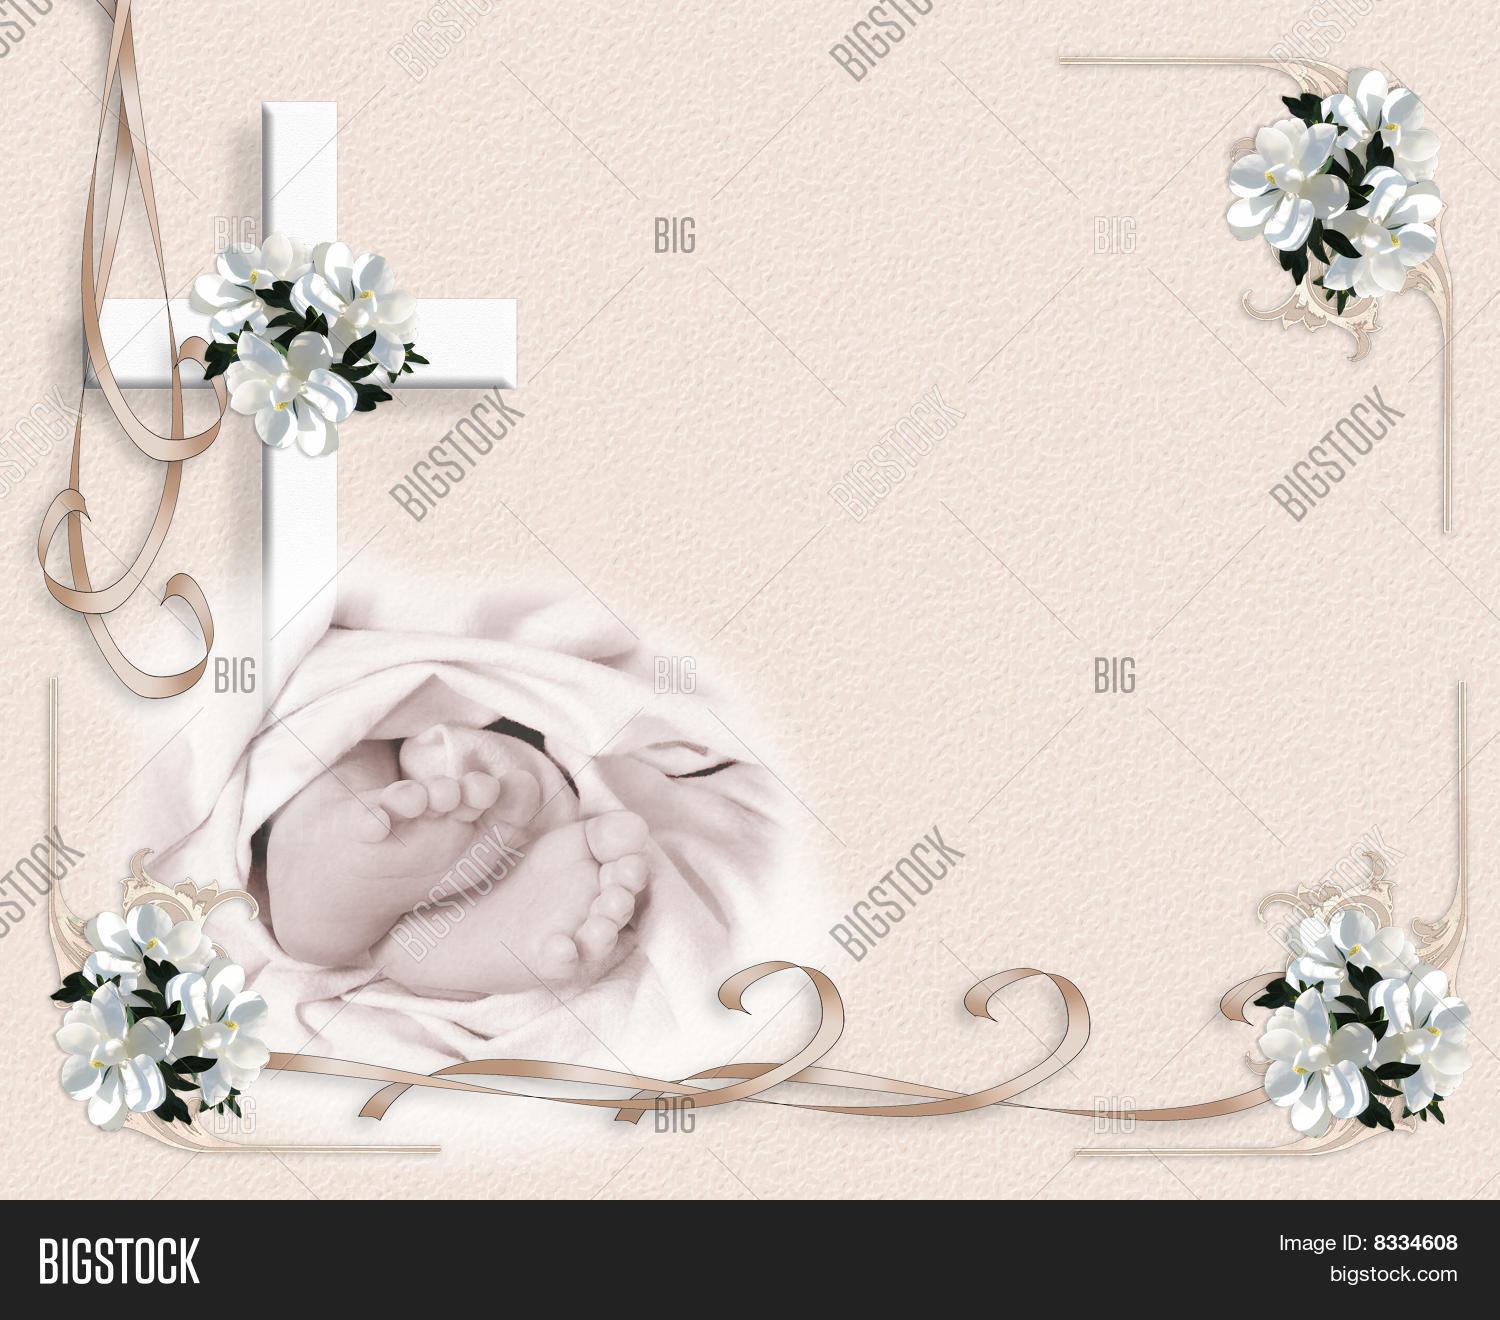 Baby Baptism Invitation Template Image Photo Bigstock